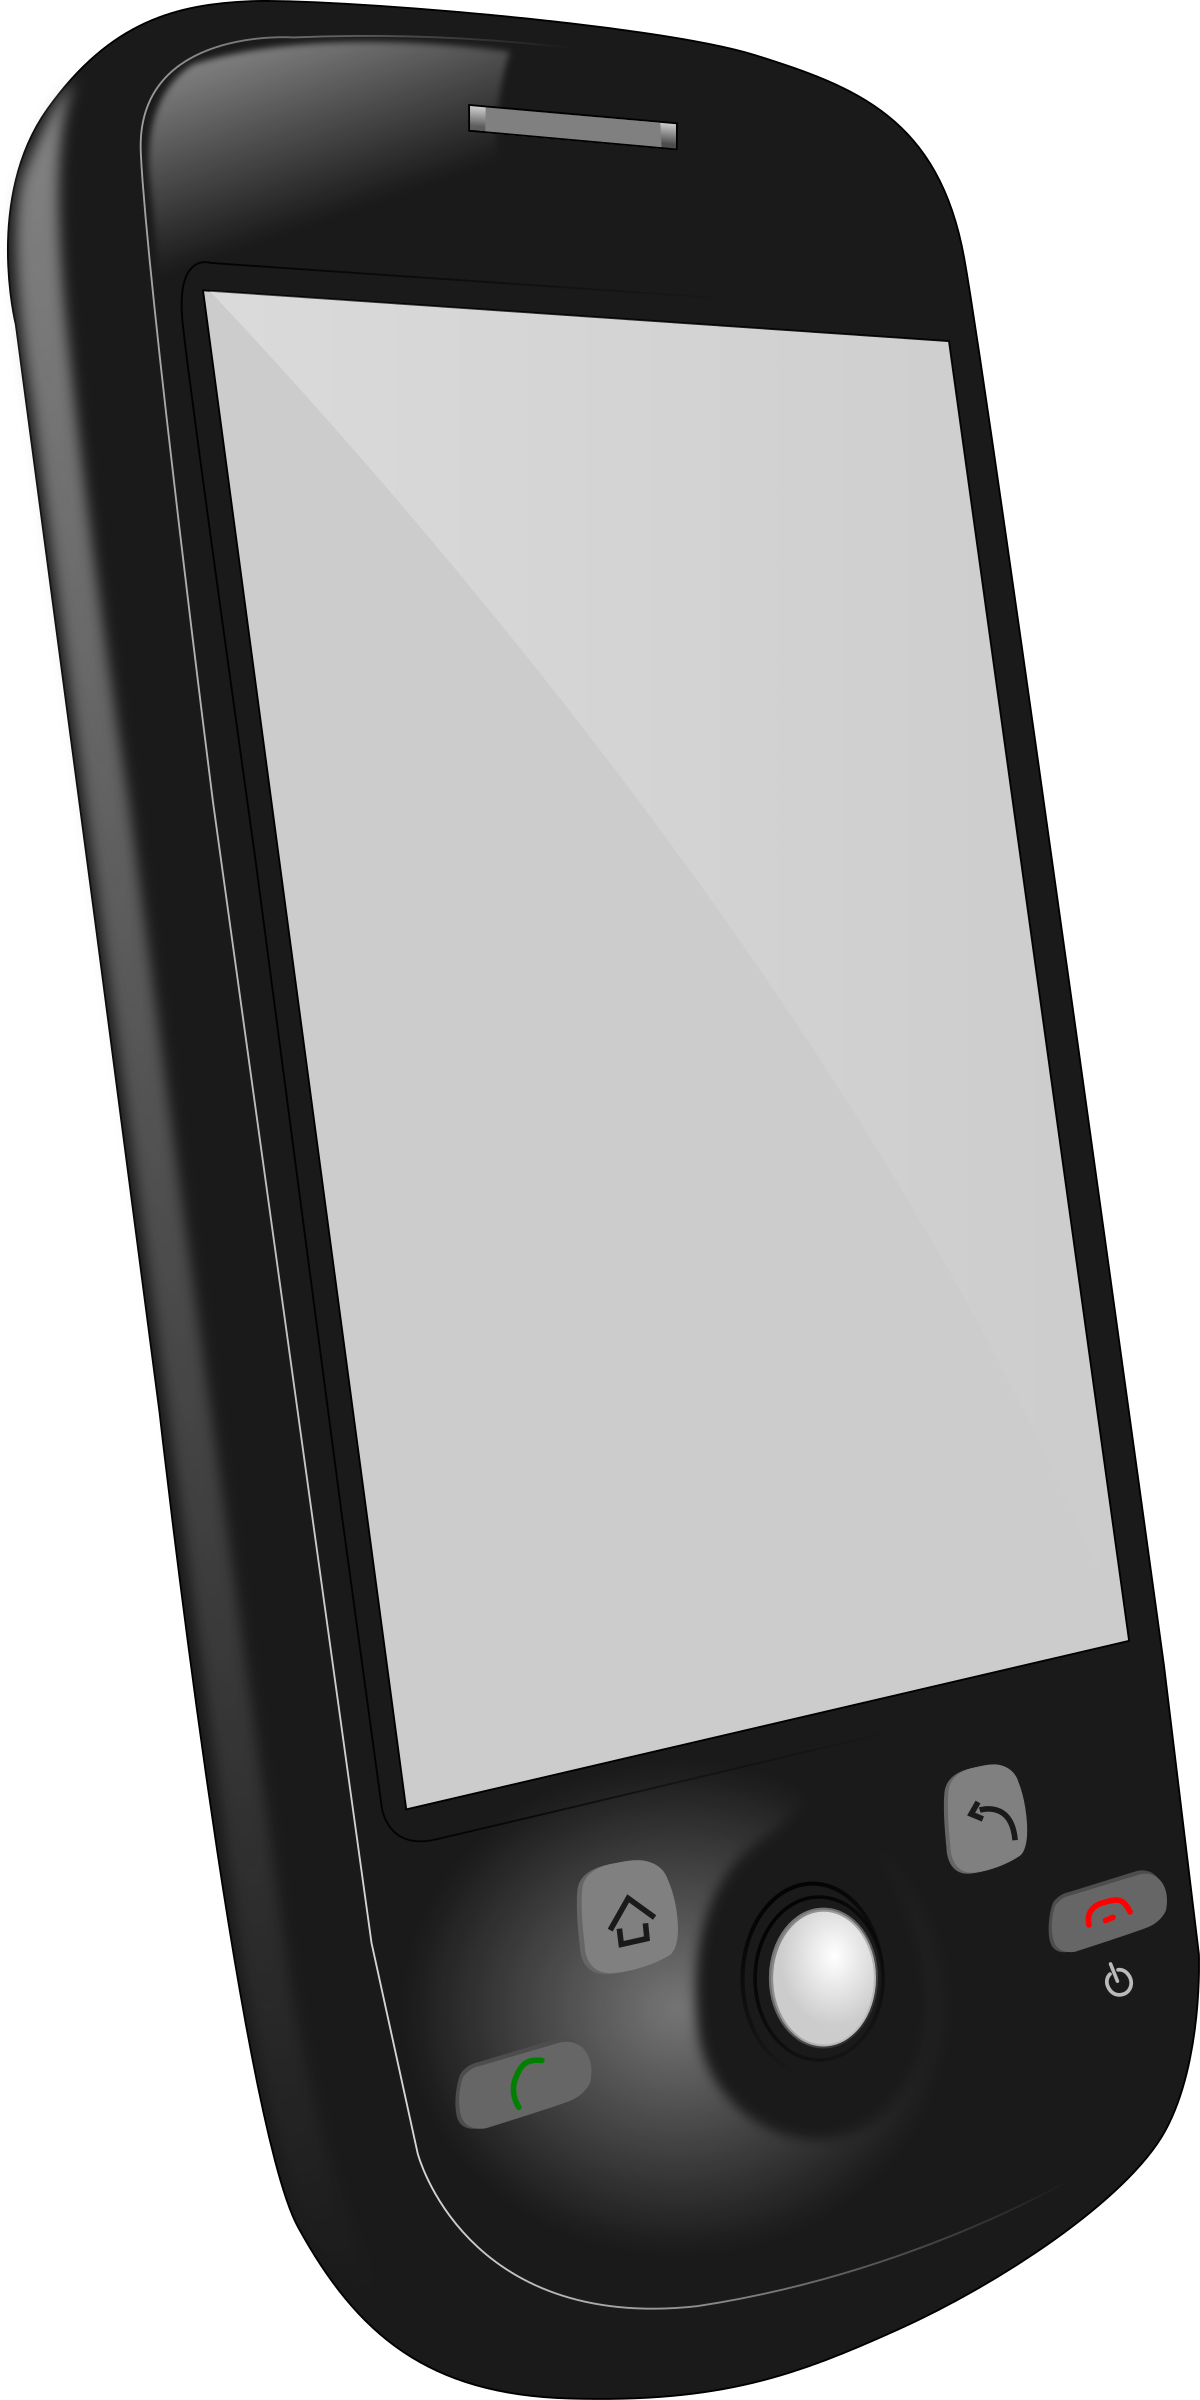 clipart royalty free stock Cell phone big image. Cellphone clipart mobile device.